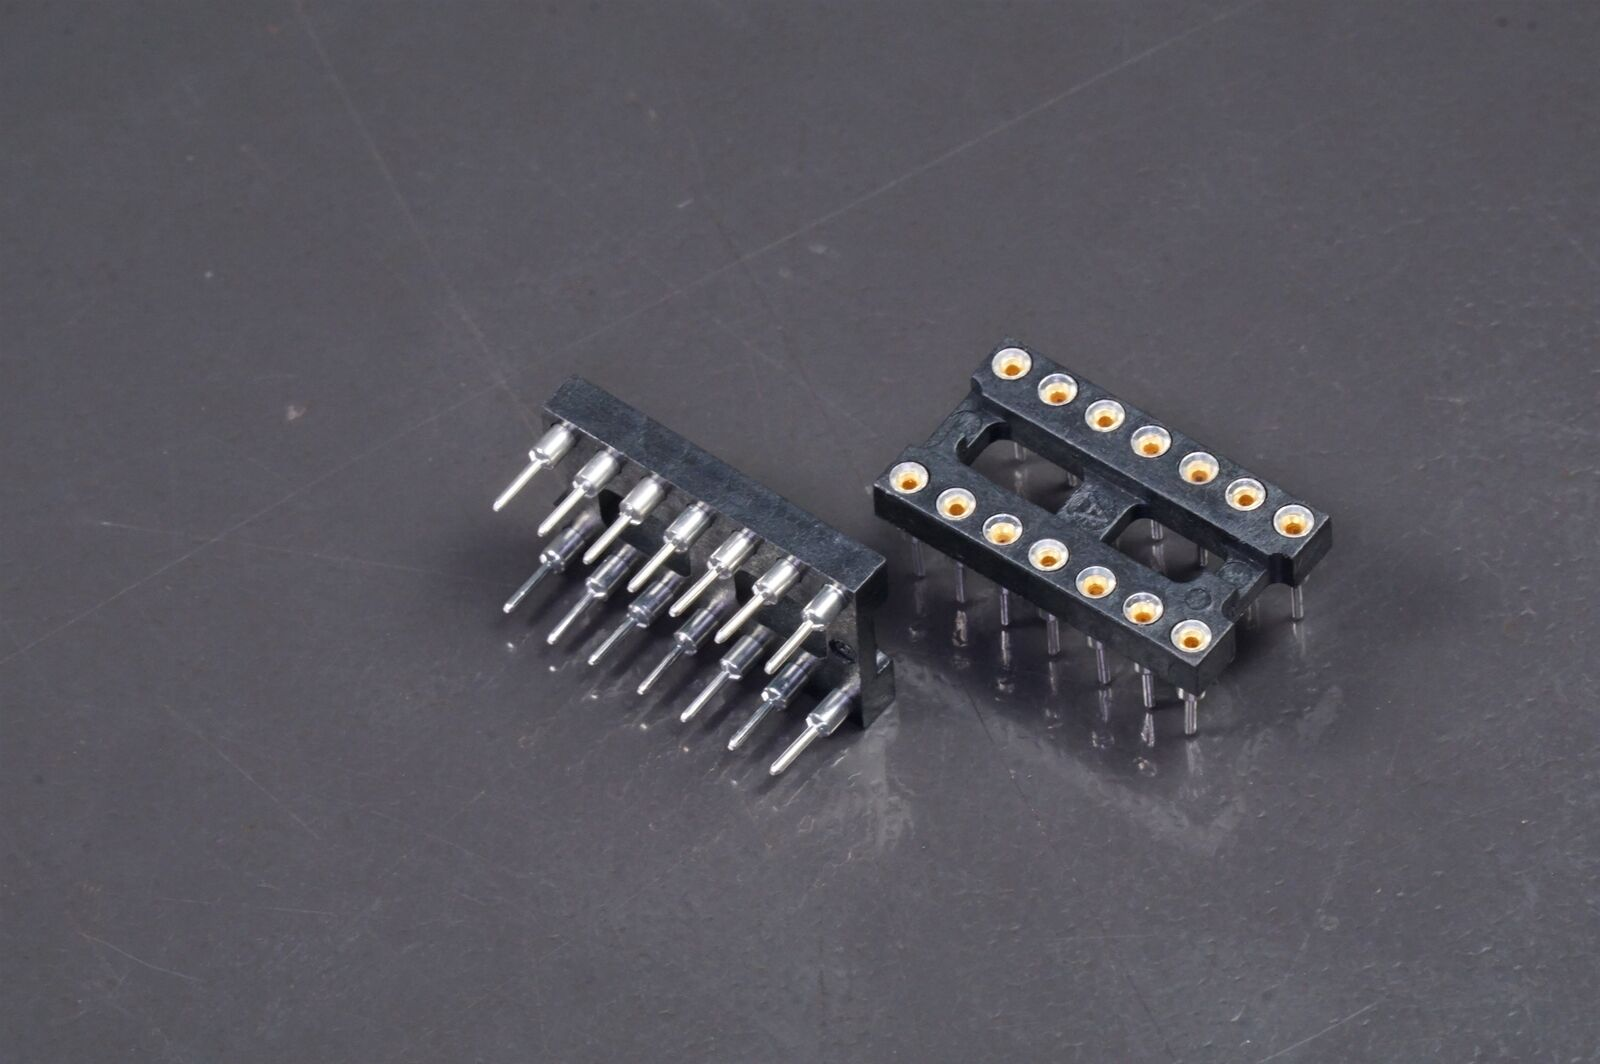 TE Connectivity//AMP 2-641268-1 Connector IC DIP Socket 40Pos 16-001515-06 25 